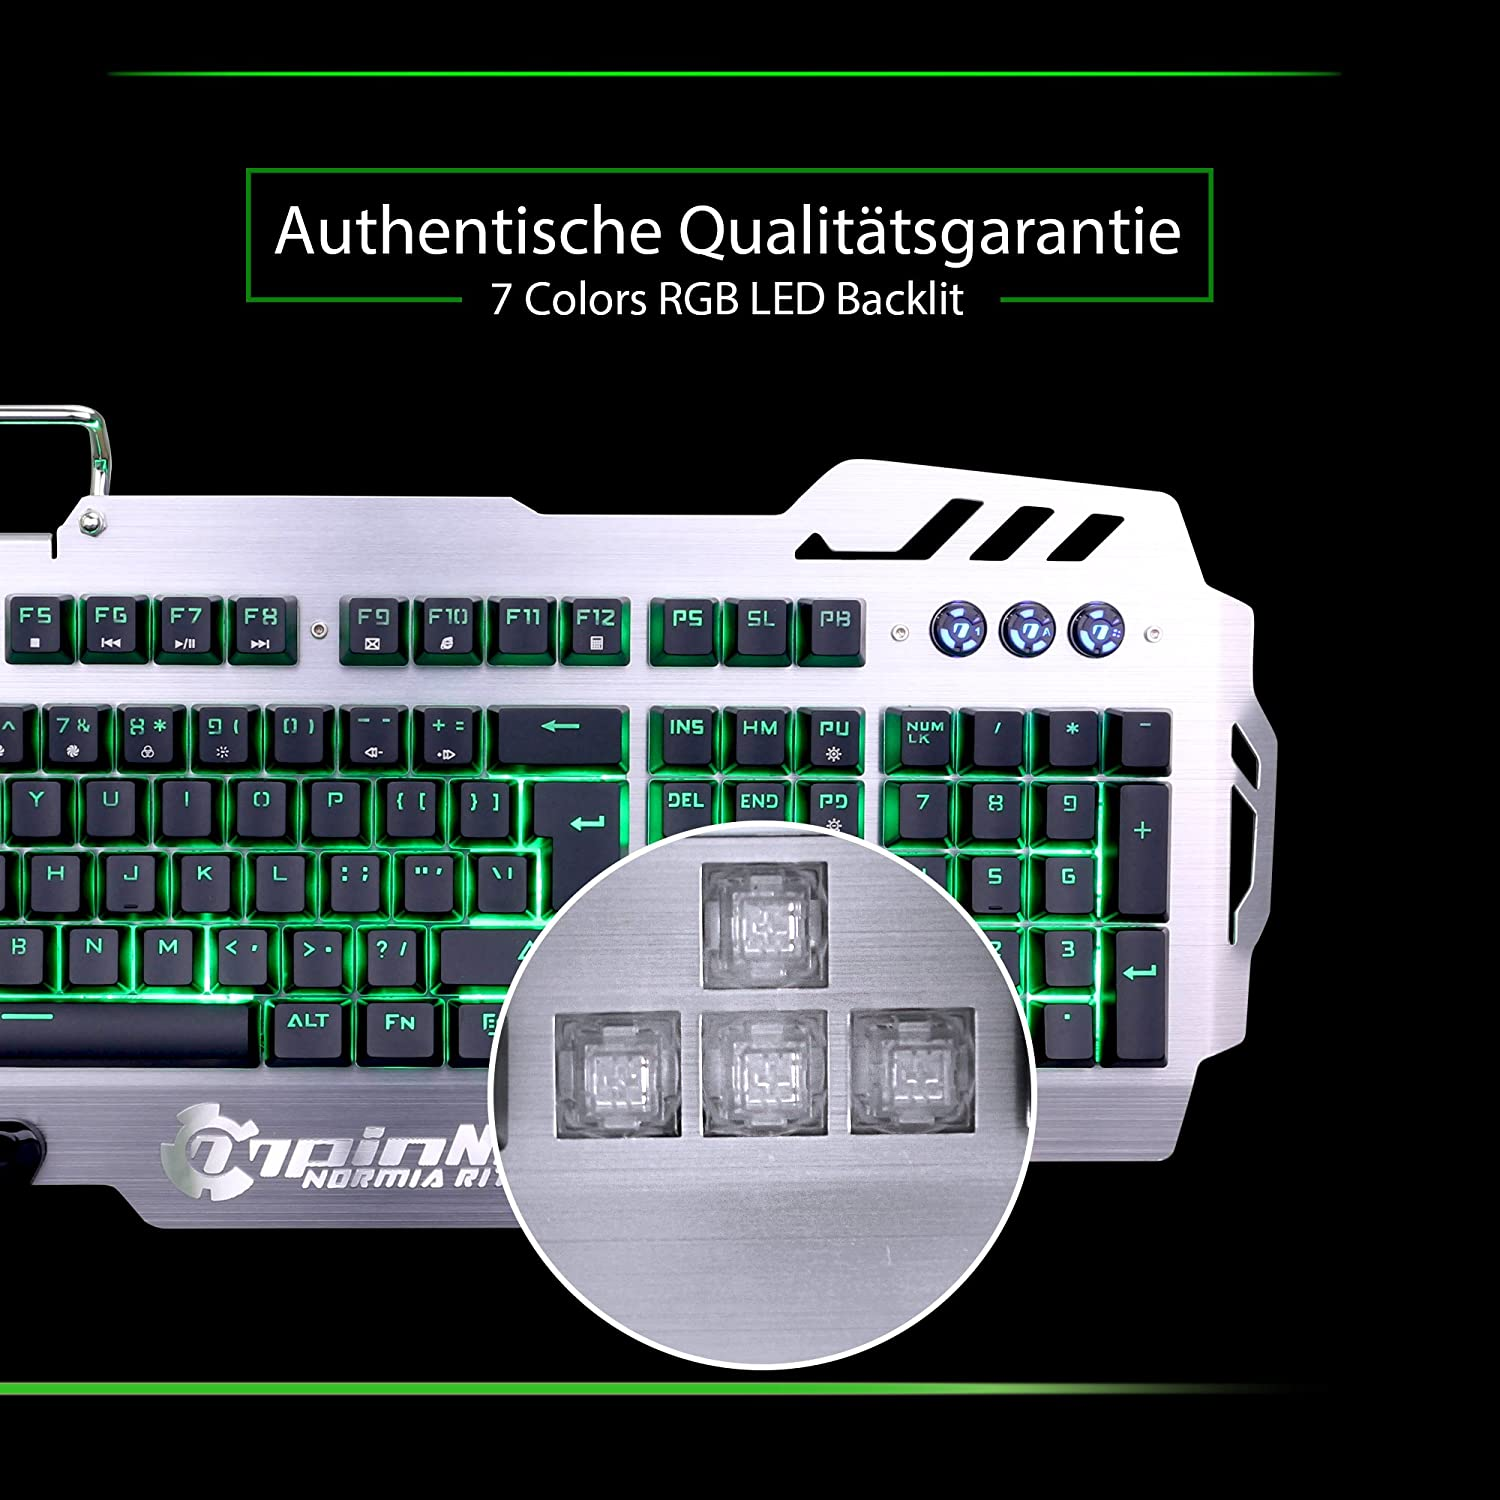 Backlight RGB LED Normia Rita 104 Key Clicky Mechanical Keyboard Mechanical-Similar Typing Experience Switch MX RGB Green Gray